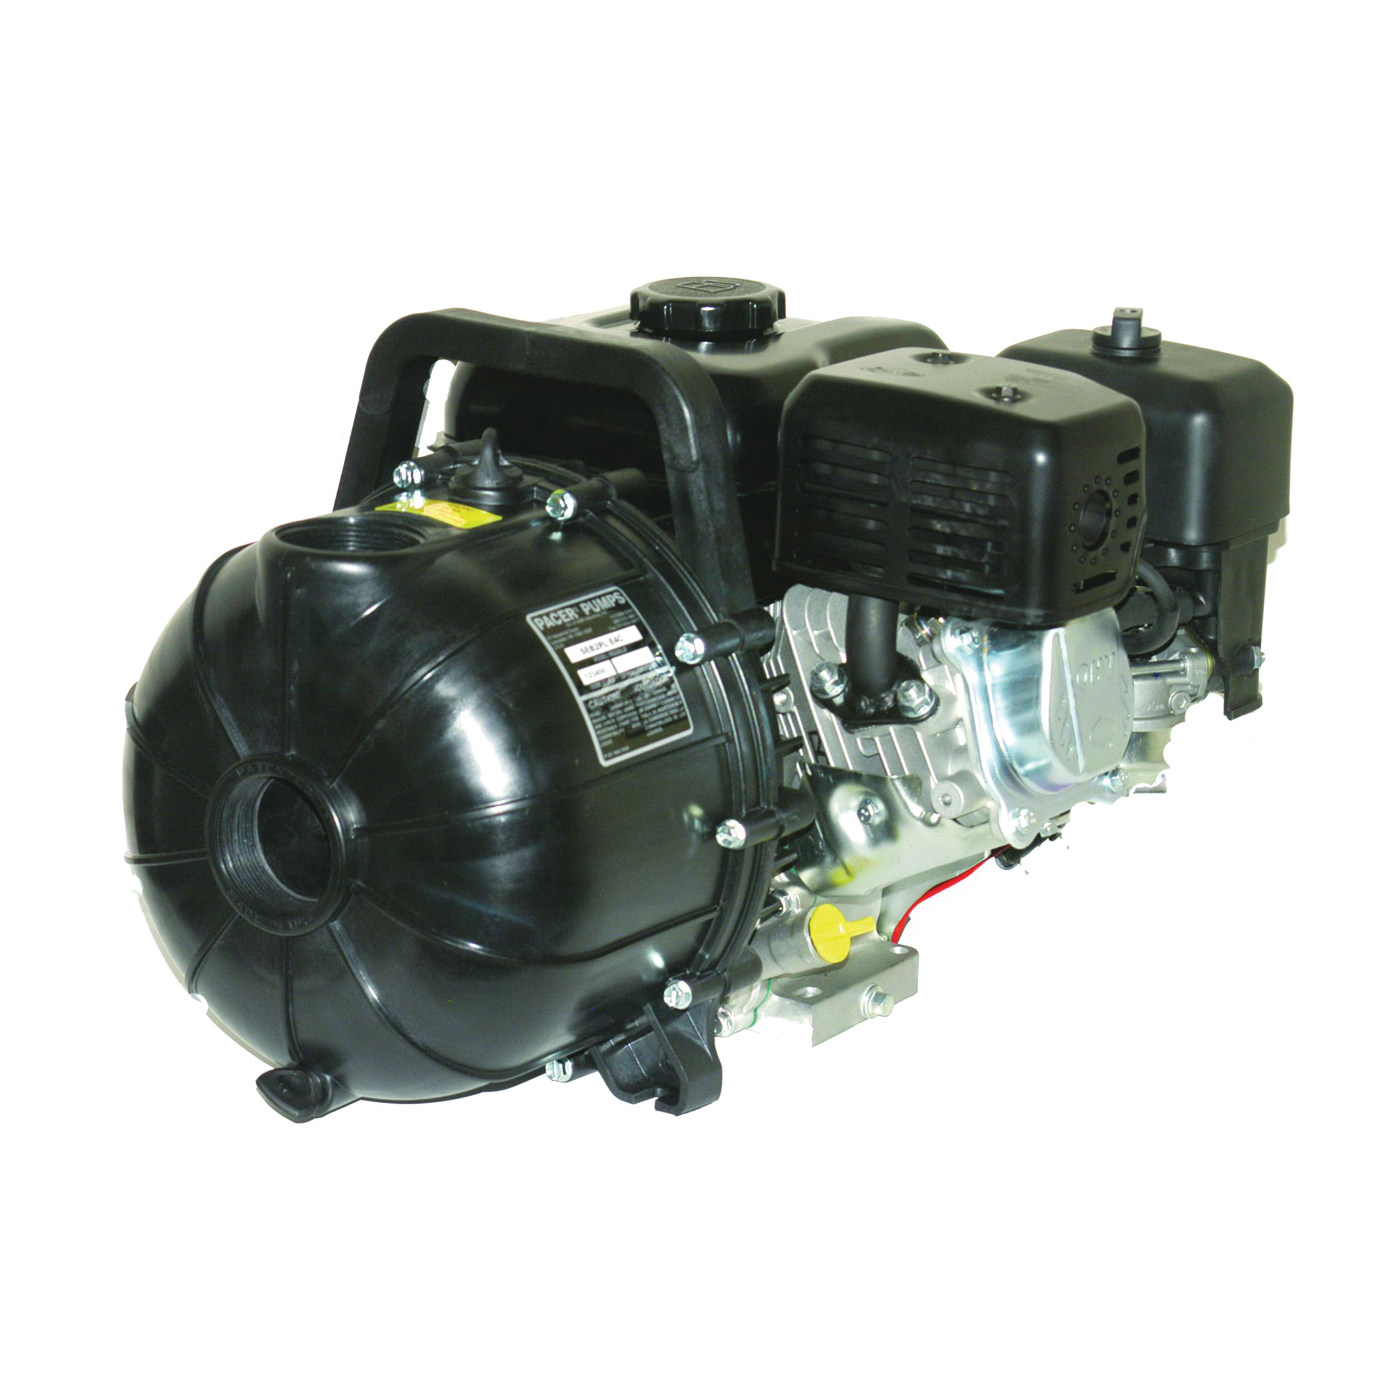 Picture of PACER PUMPS S Series SE2PLE550 Centrifugal Pump, 2 in Outlet, 100 ft Max Head, 145 gpm, Glass Reinforced Polyester